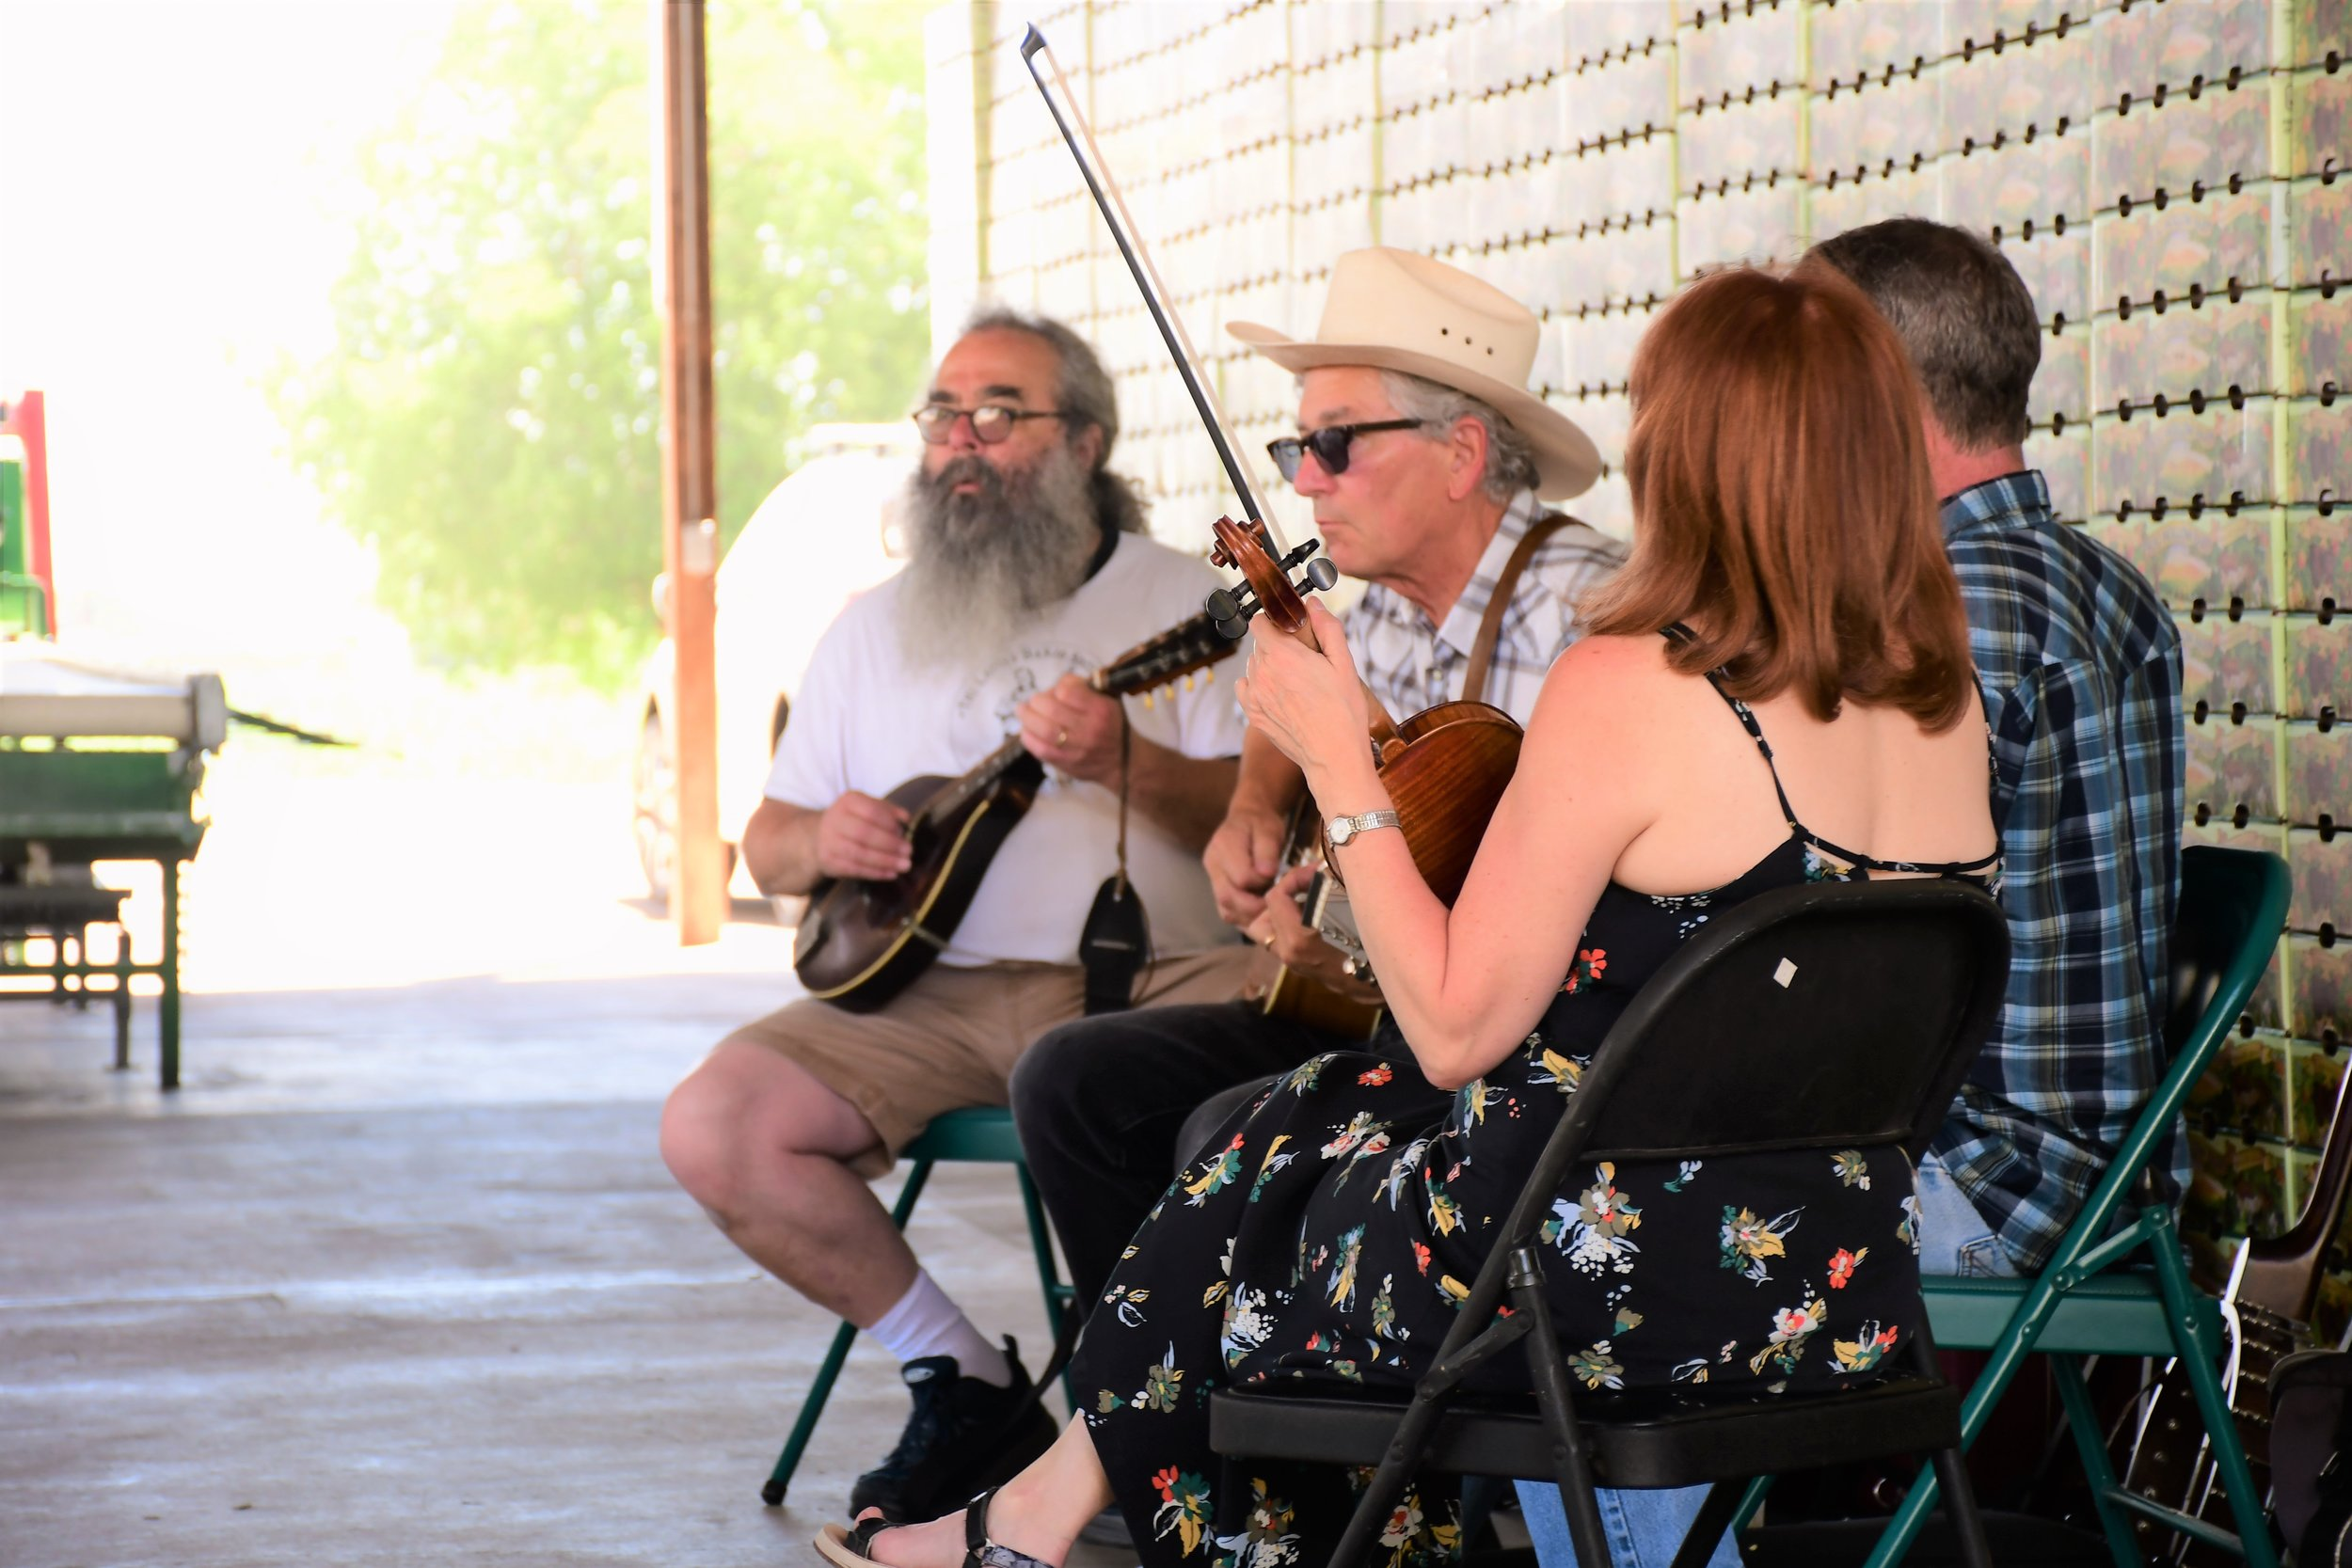 Bluegrass tunes in the packing shed